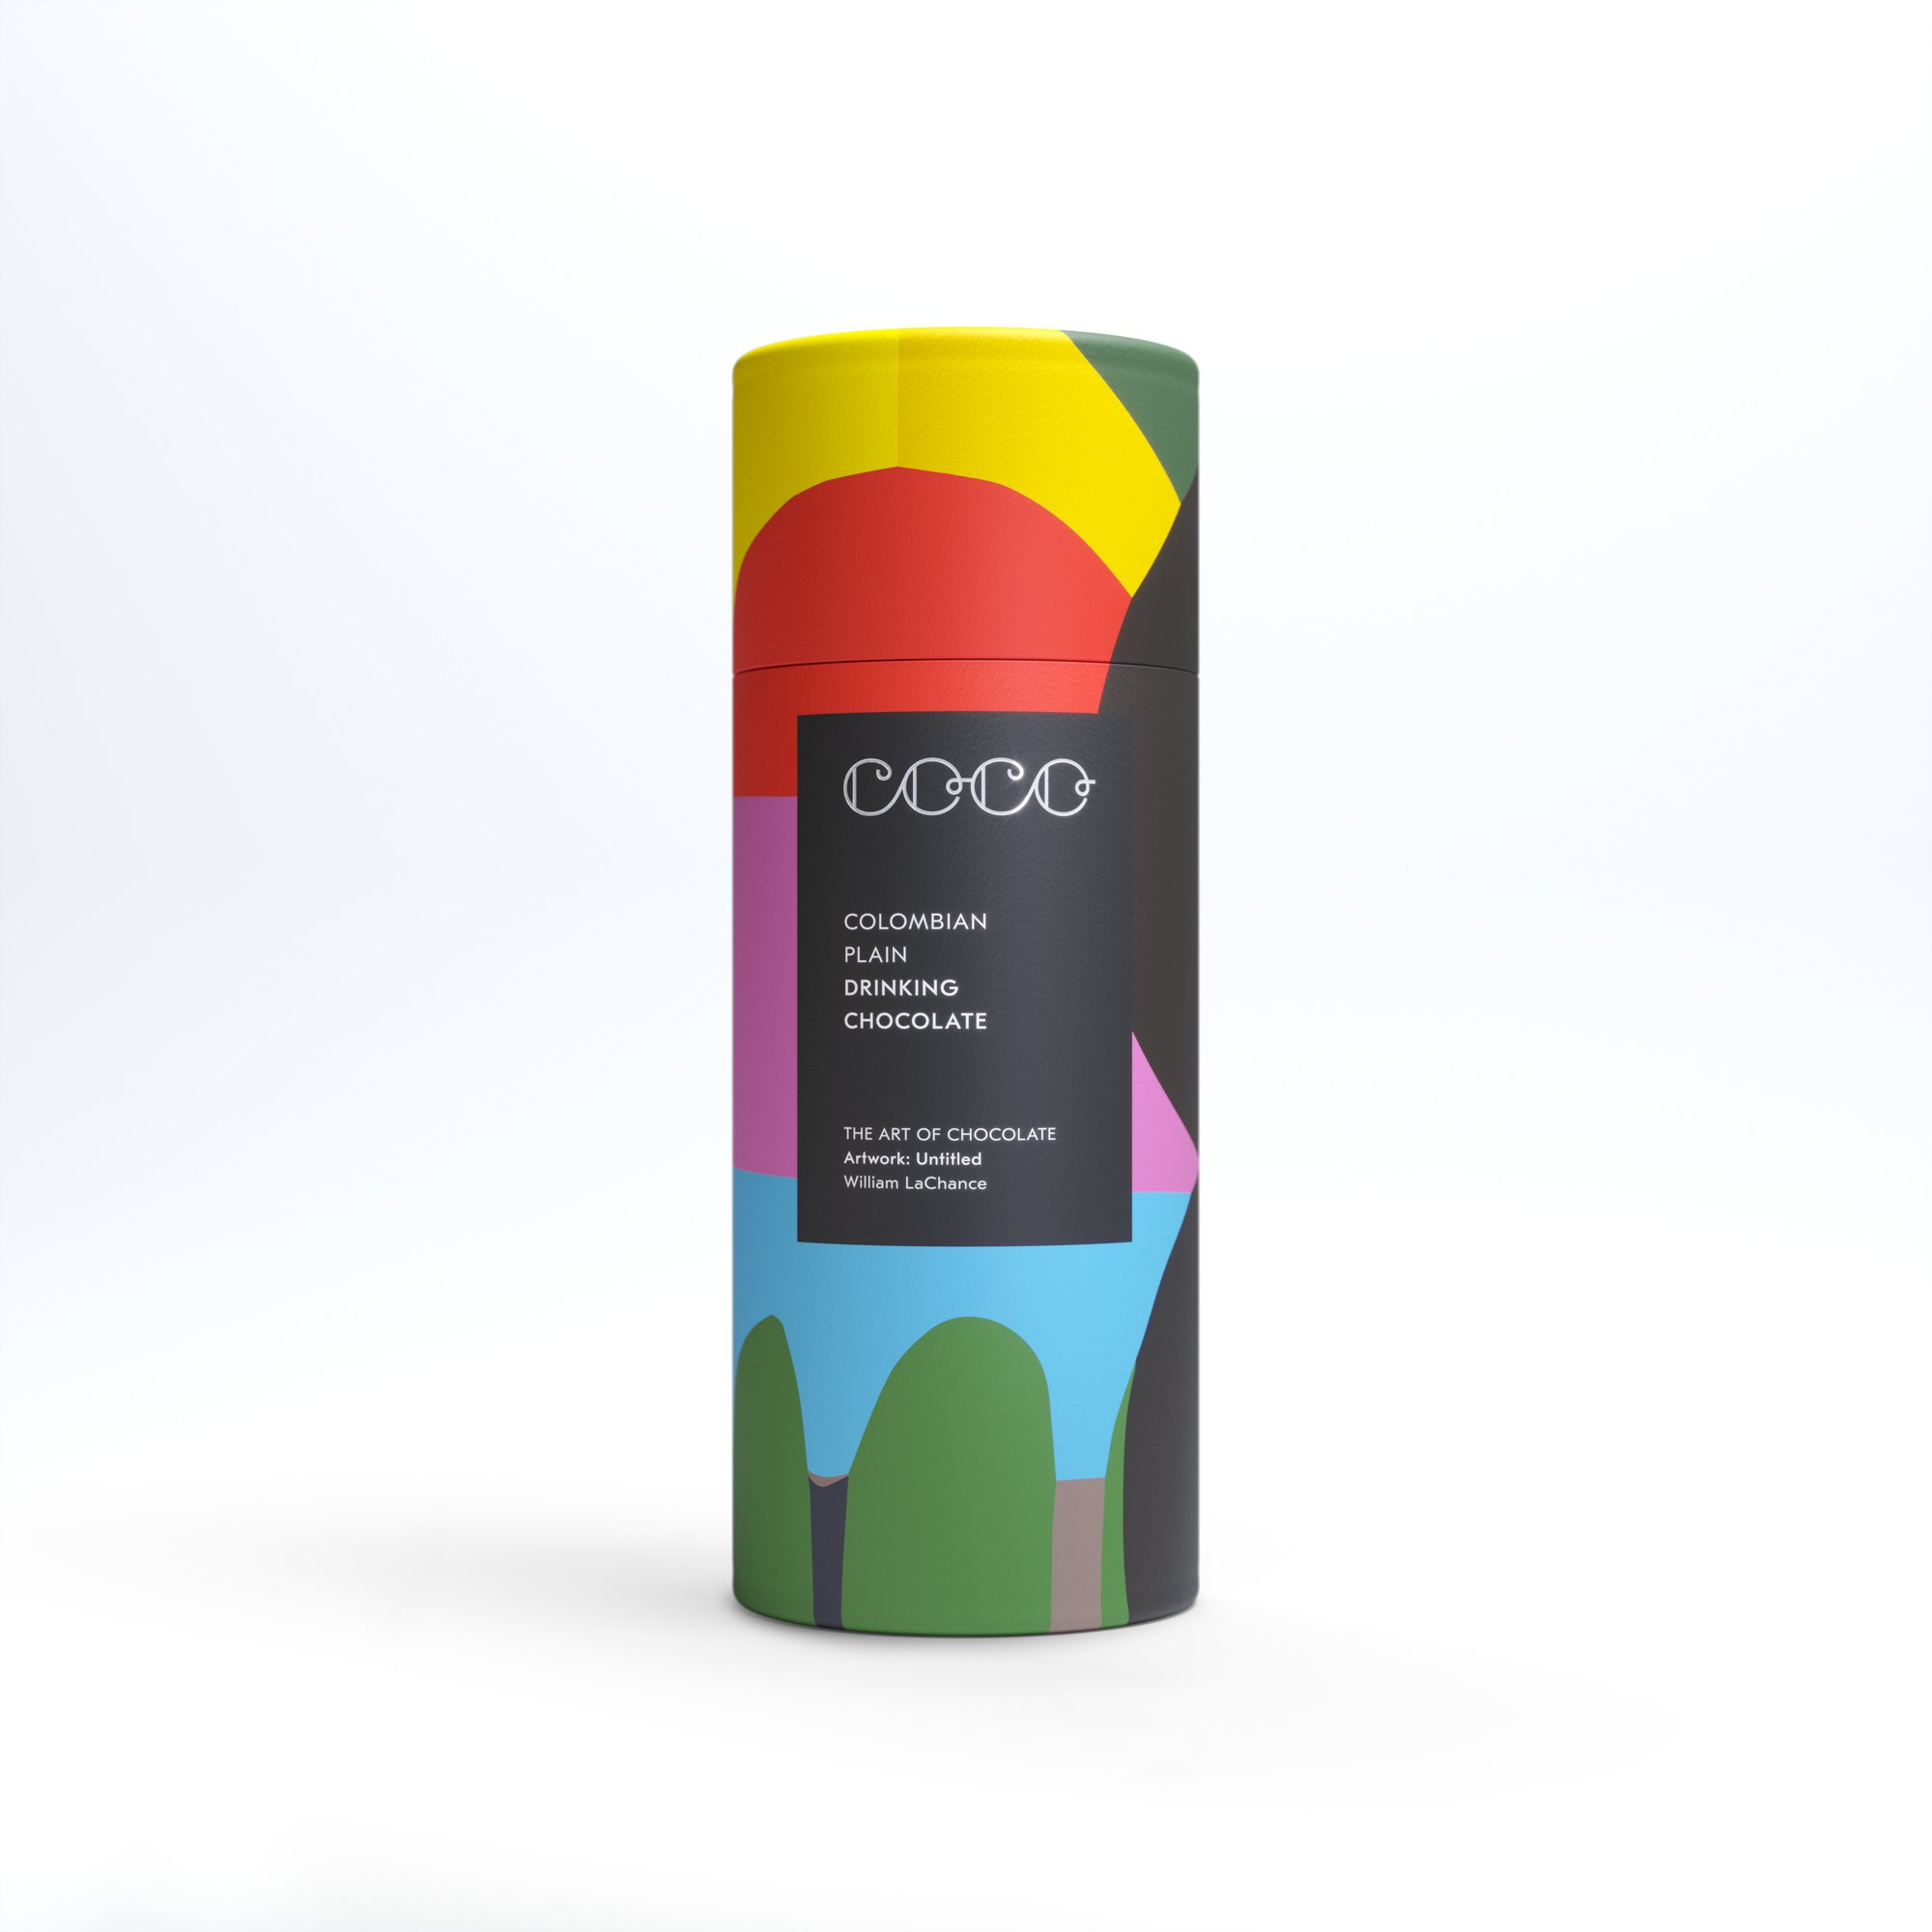 COCO - Colombian Drinking Chocolate